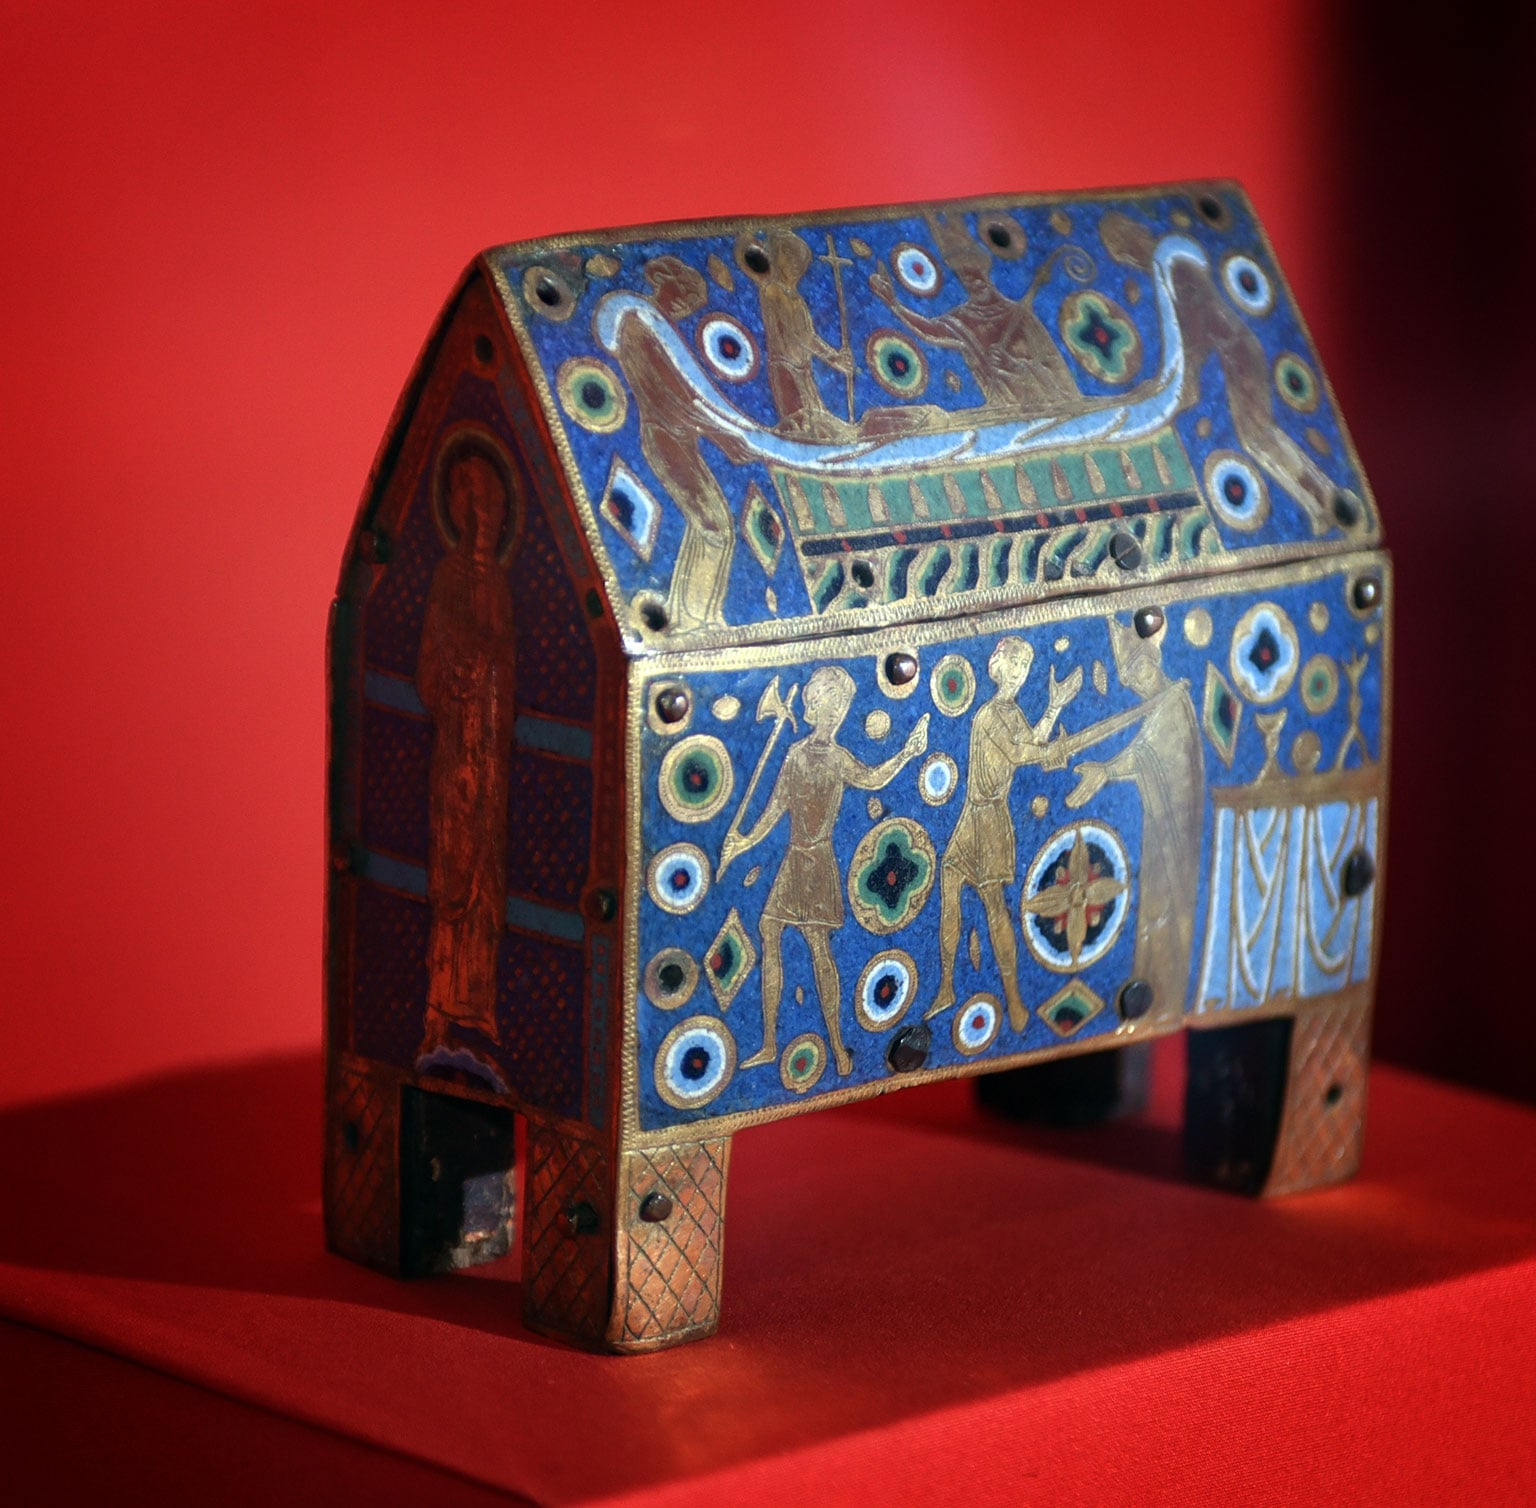 Champlevé enamel casket depicting the martyrdom of St Thomas Becket 13th century